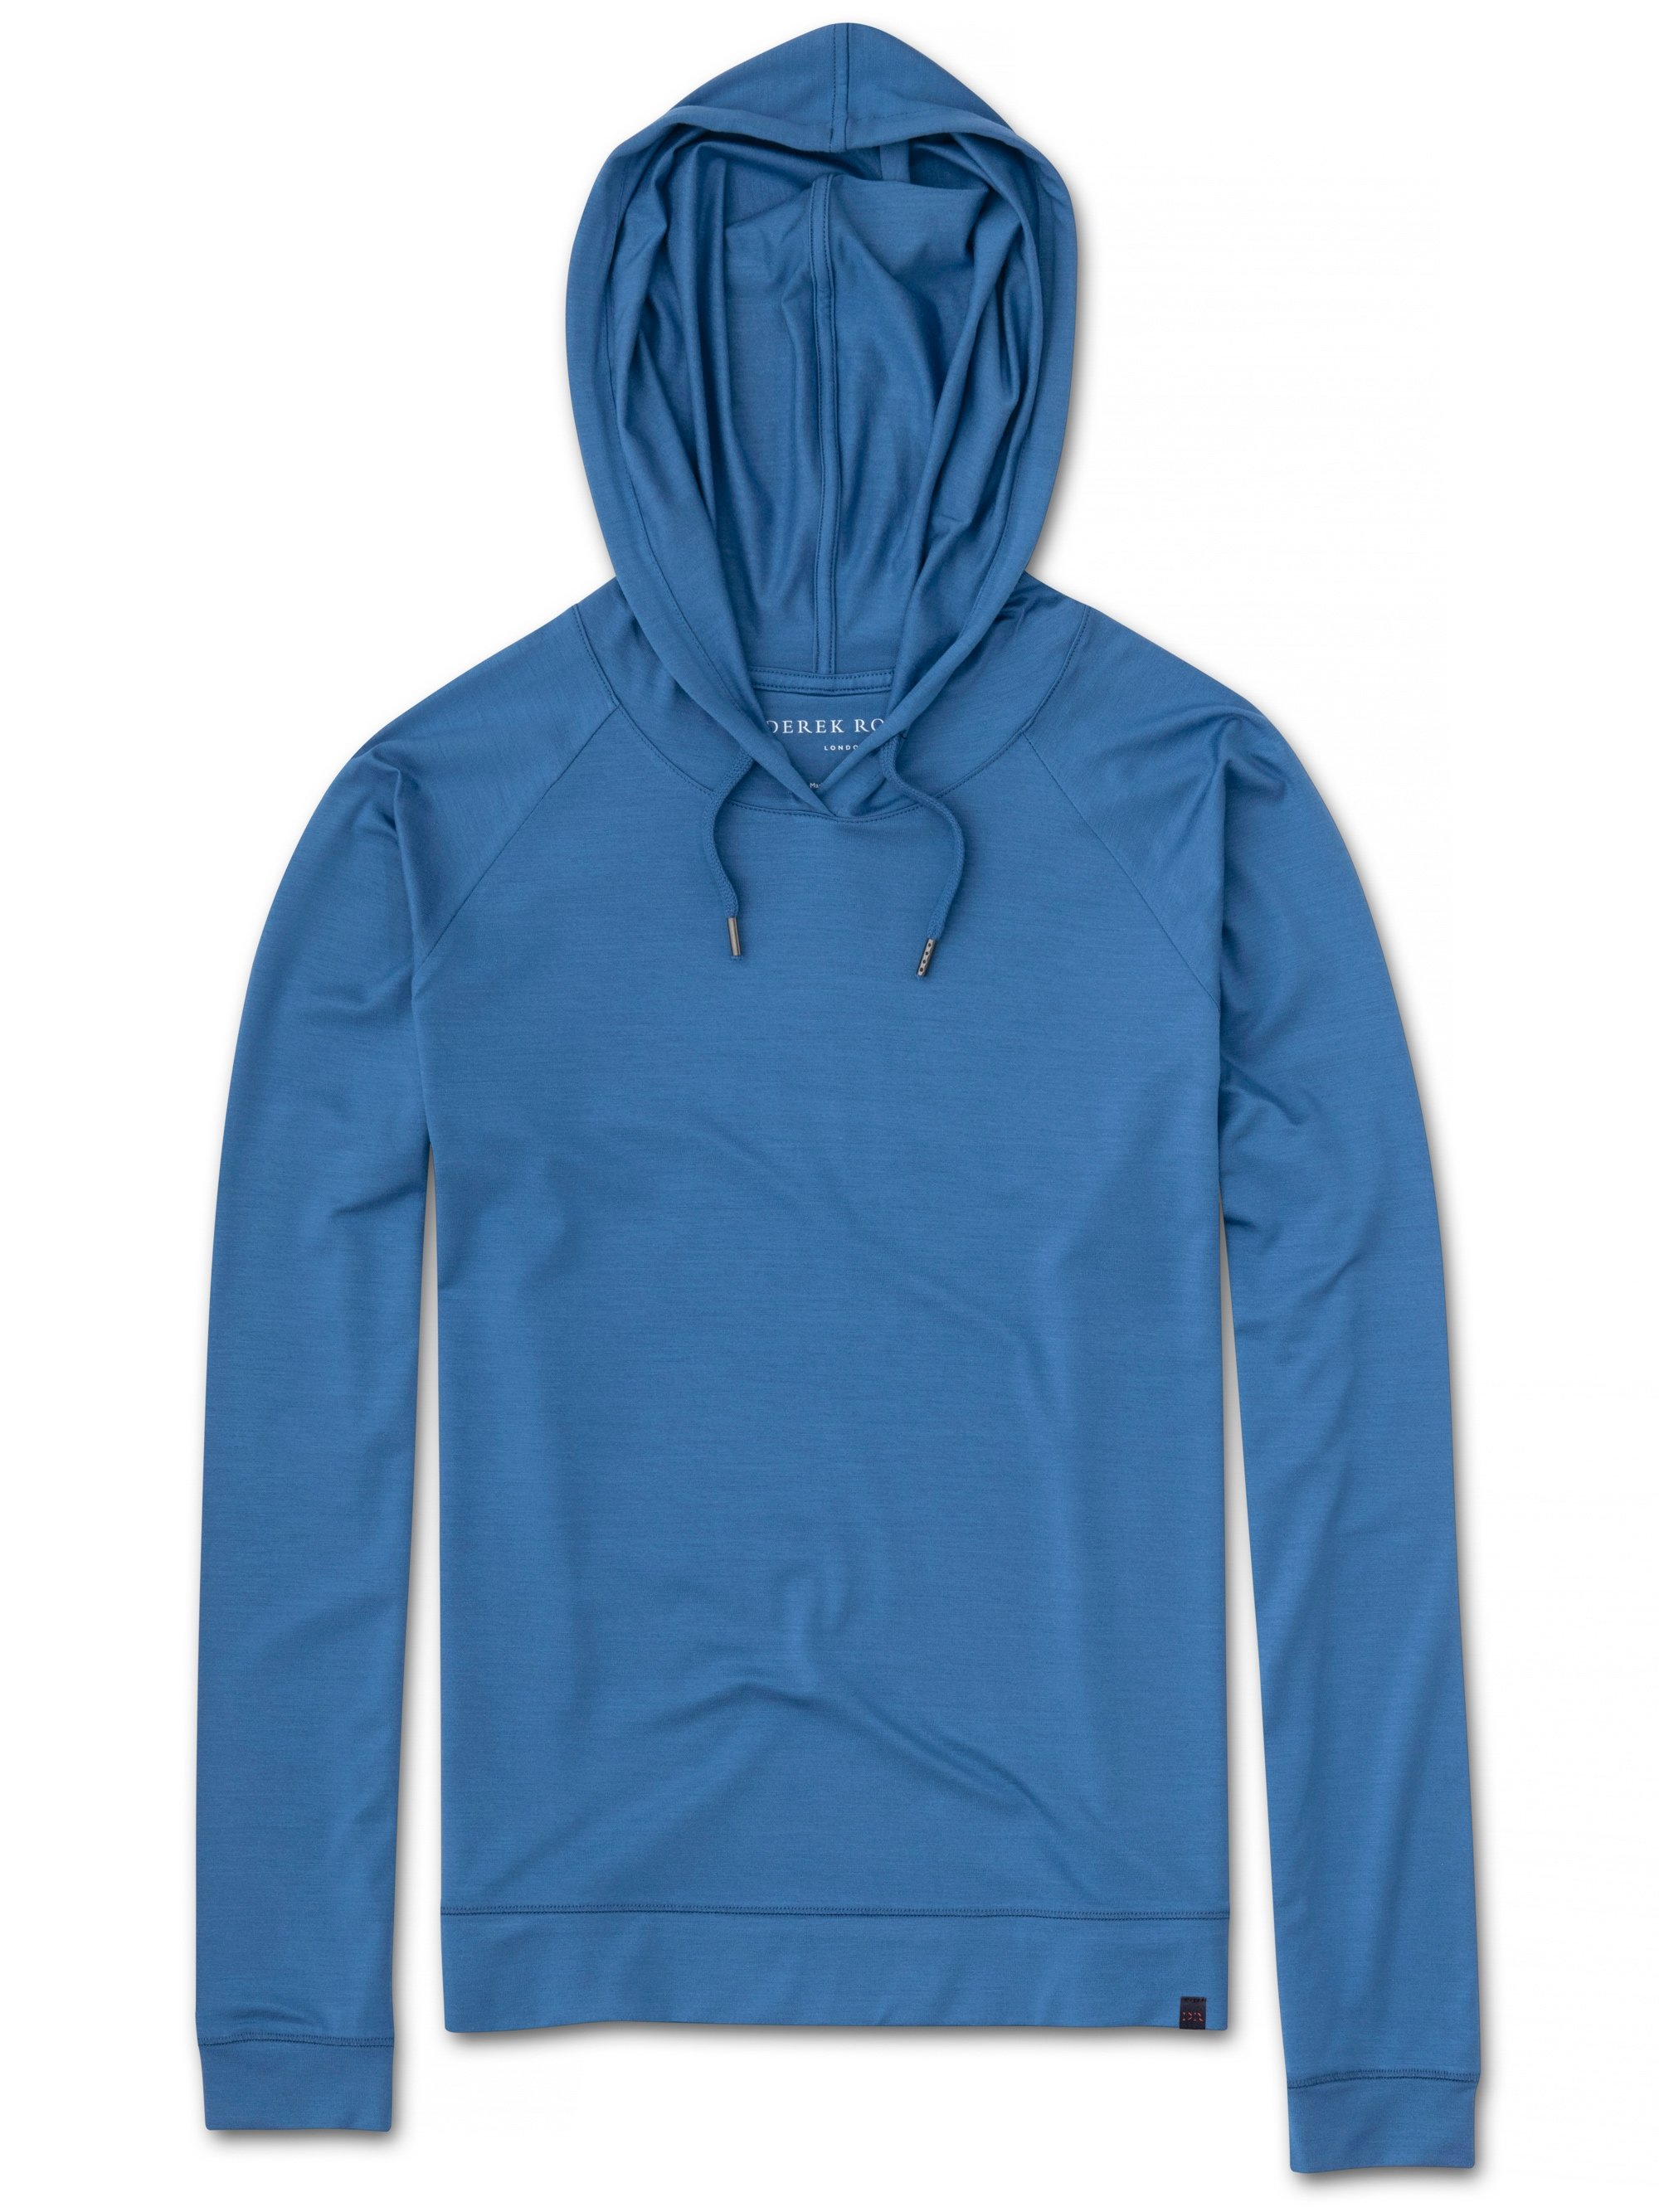 Women's Jersey Pullover Hoodie Basel 9 Micro Modal Stretch Blue